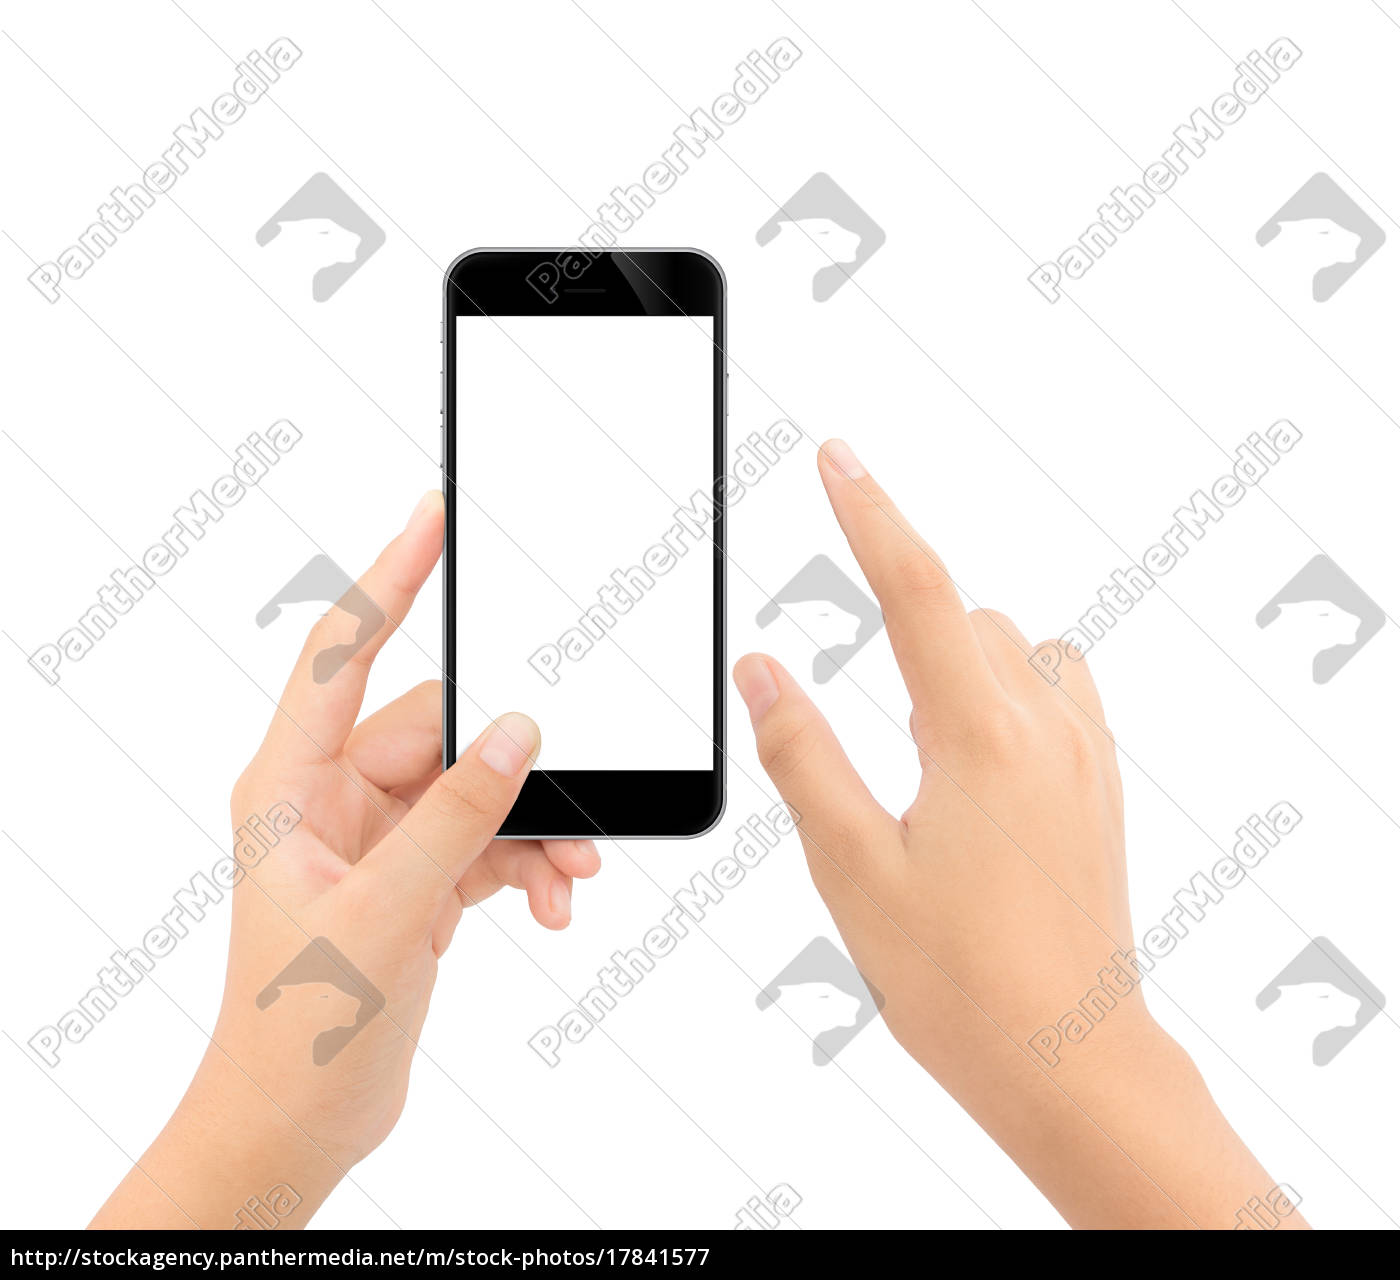 close, up, hand, touching, on, phone - 17841577